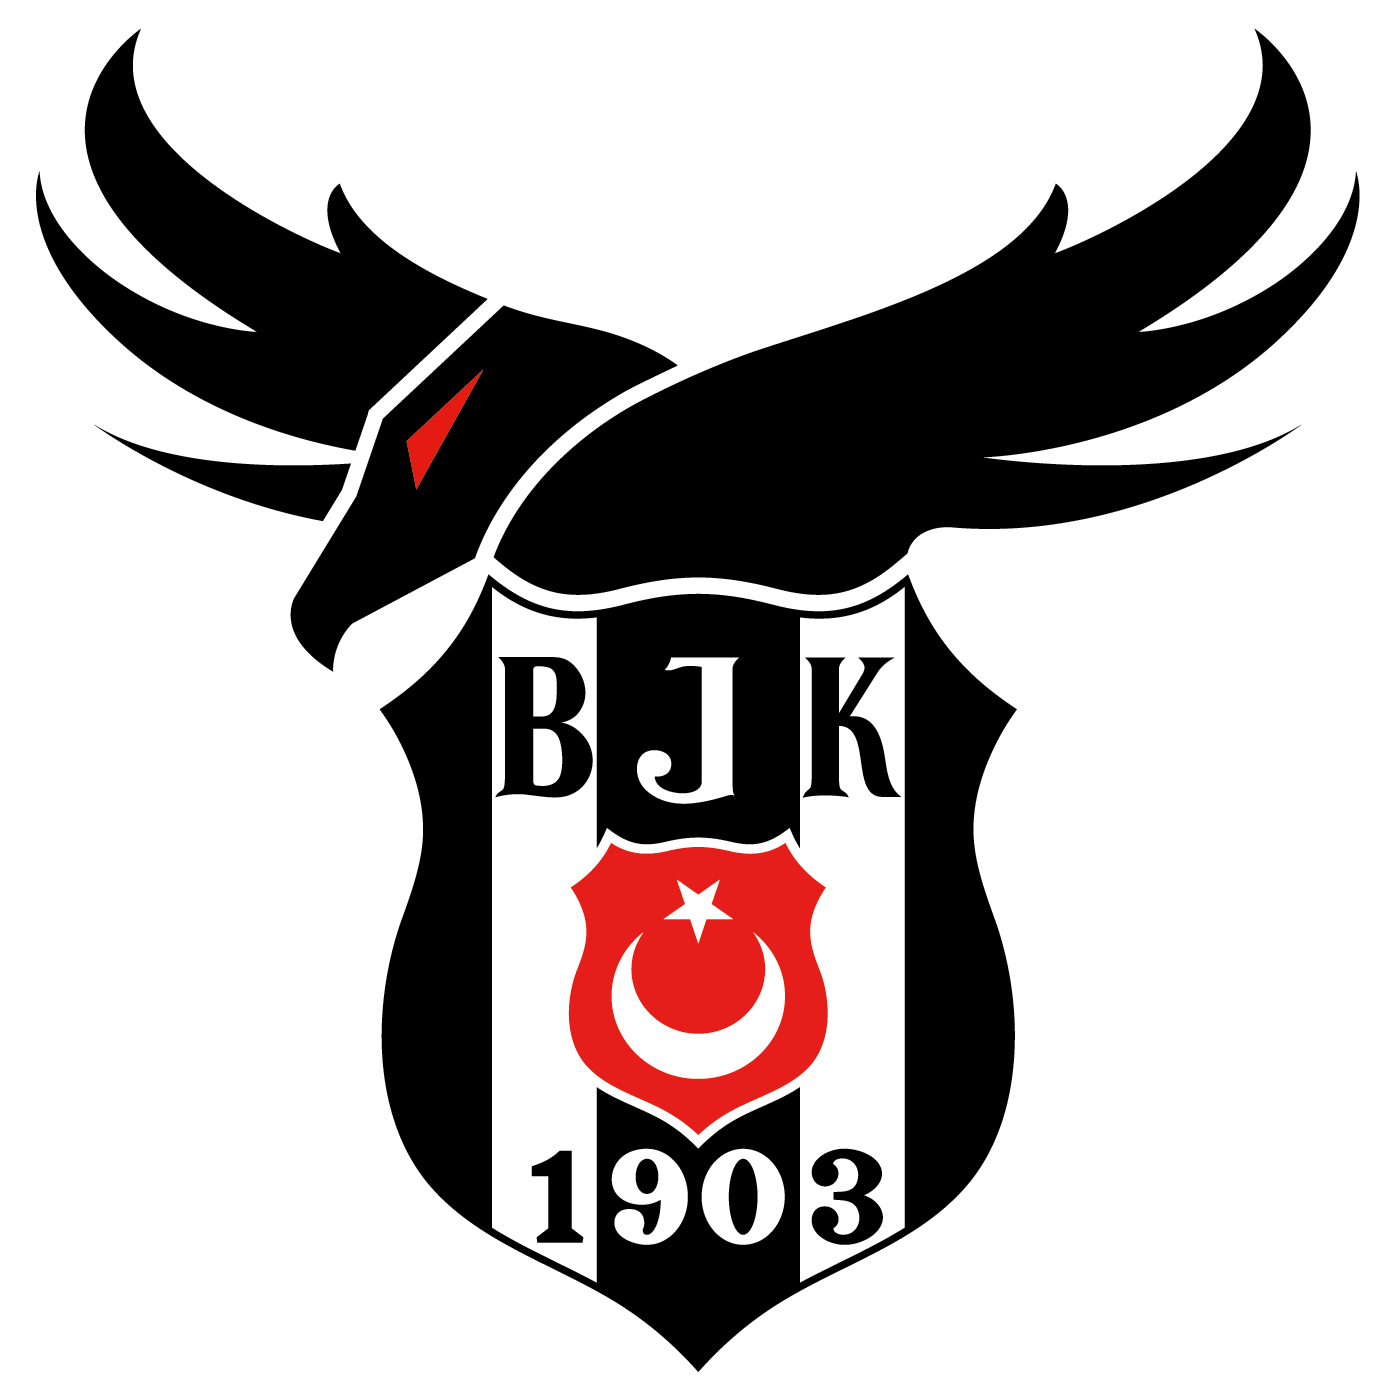 Beşiktaş Esports League of Legends Team